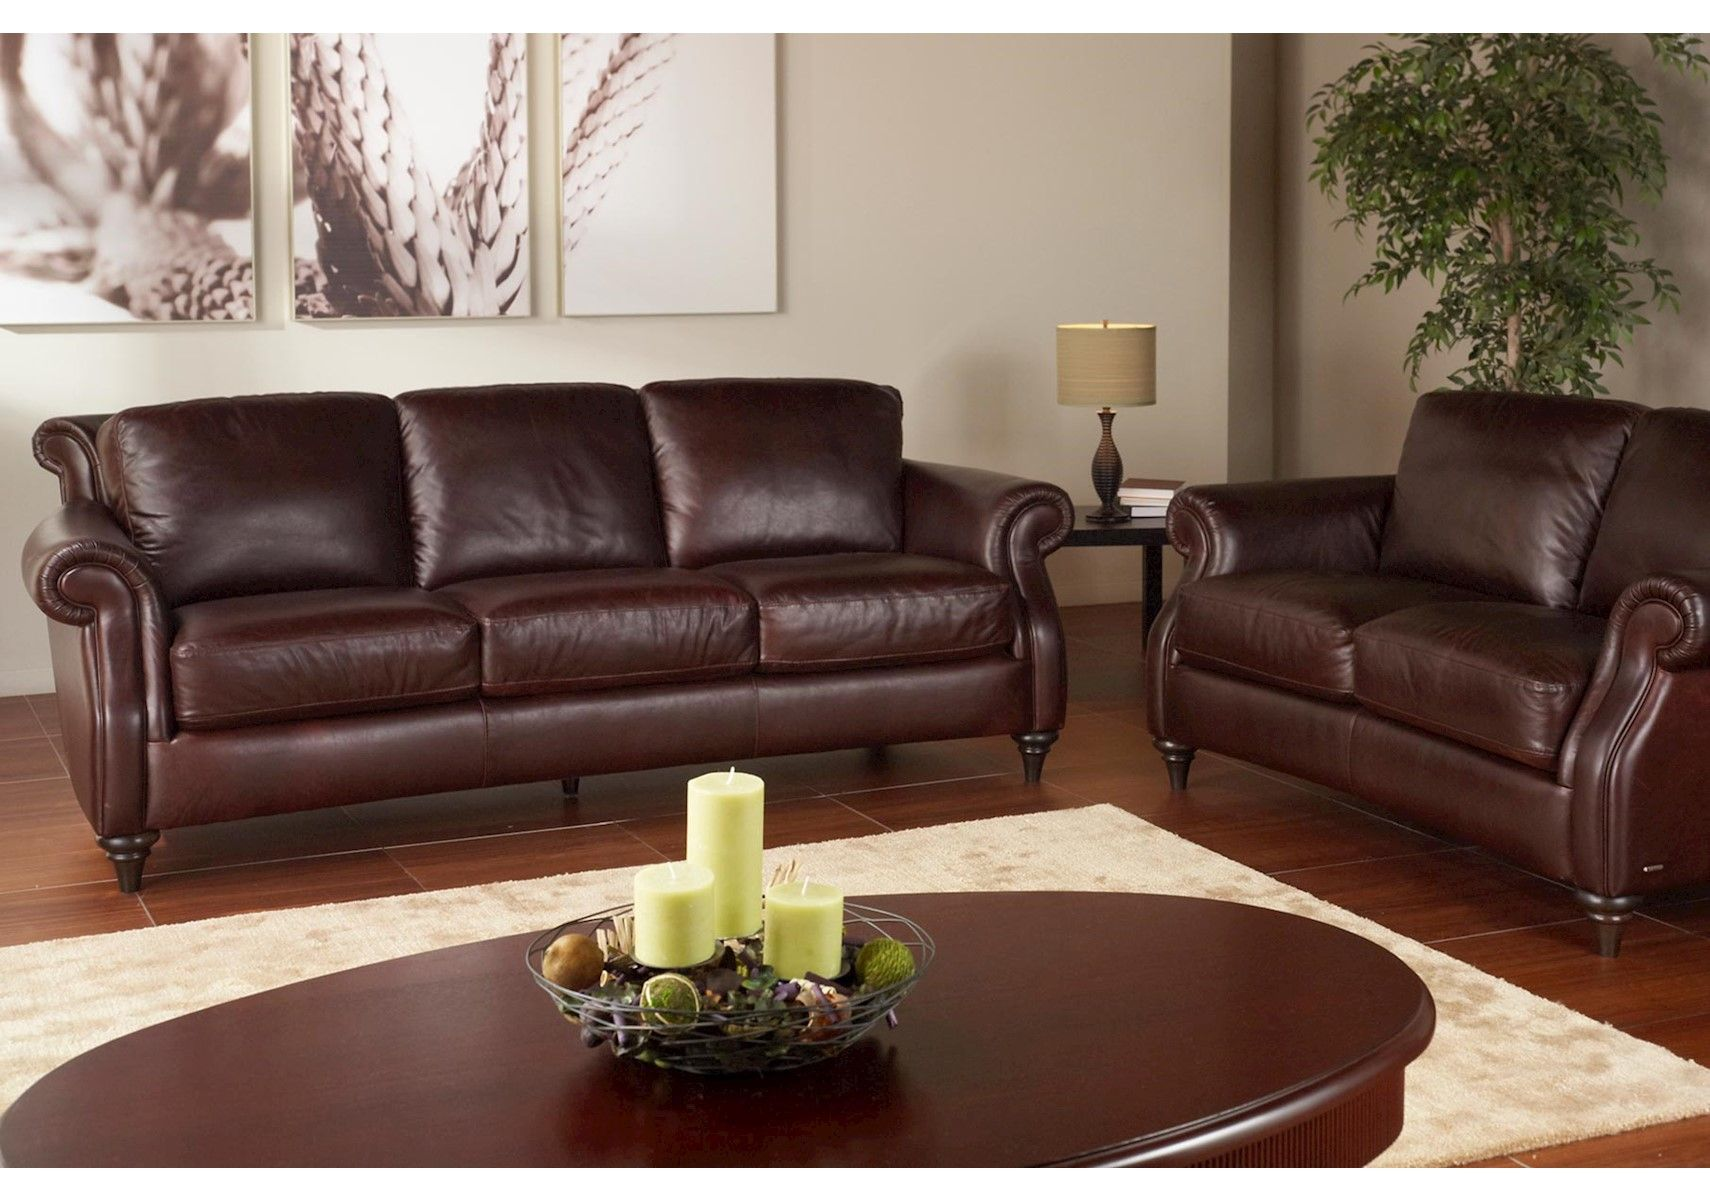 Traditional Leather Sofa With Wood Feet By Natuzzi Editions Becker Furniture World Twin Cities Minneapolis St